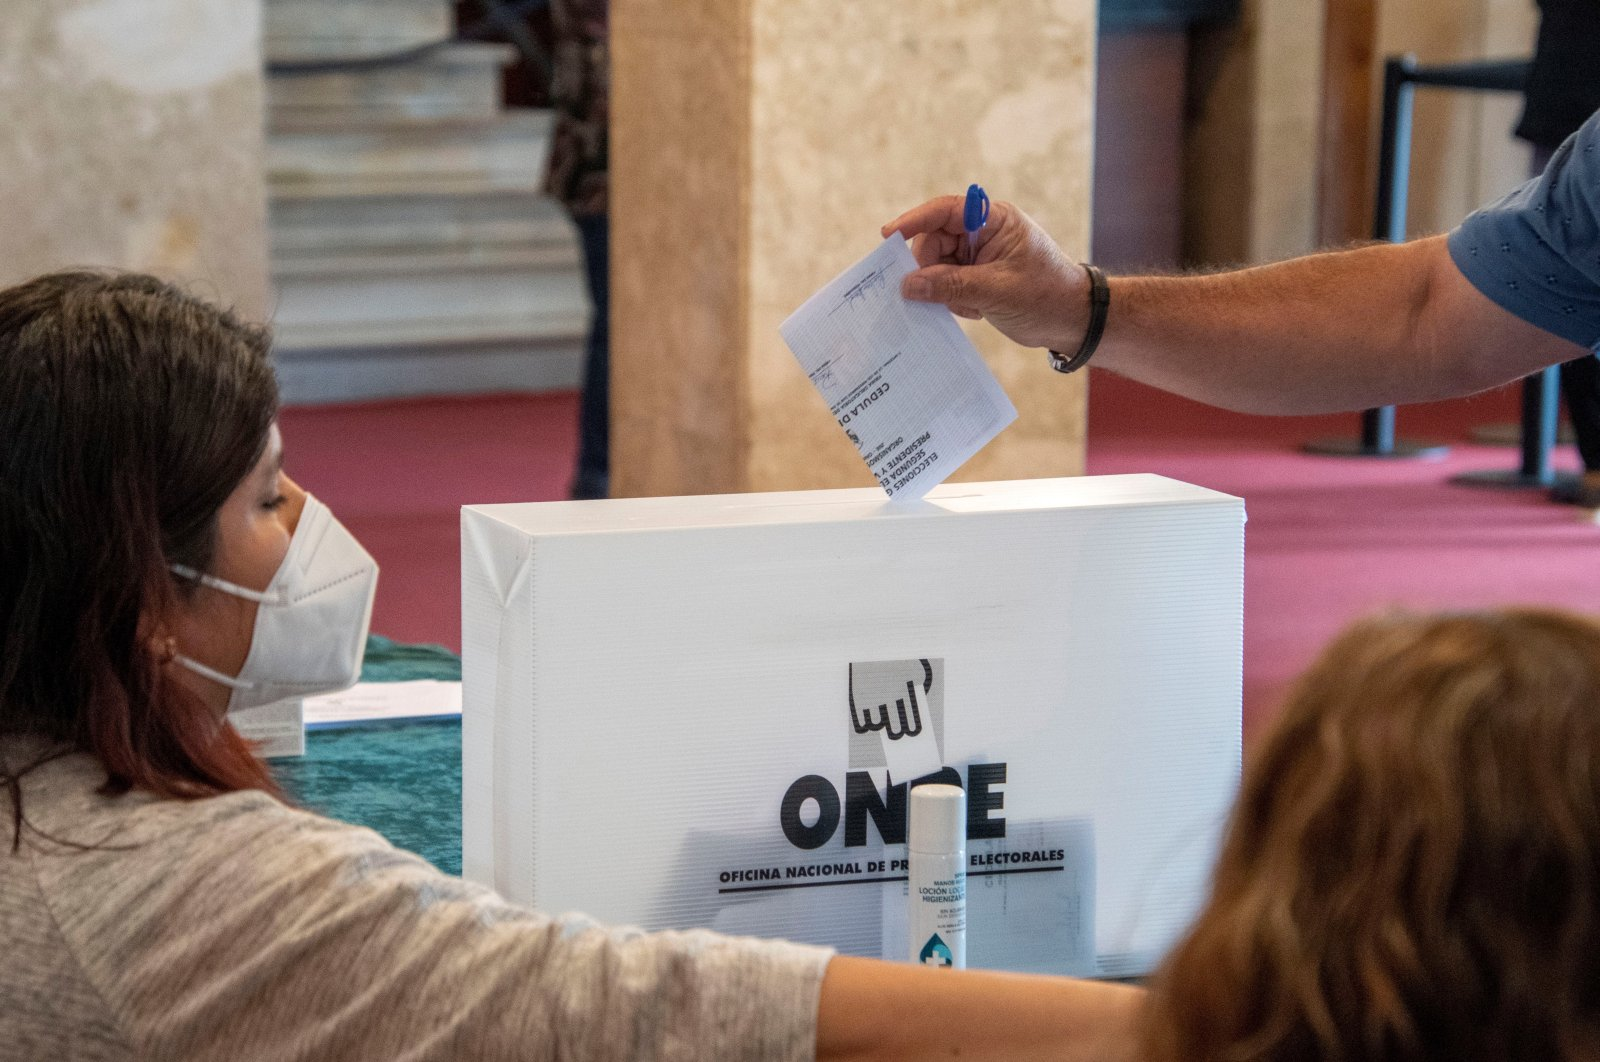 Peruvian residents in Spain cast ballots at Auditorium in Palma, Majorca, Spain, in order to vote for the second round of the Presidential elections in Peru, June 06, 2021. (EPA Photo)